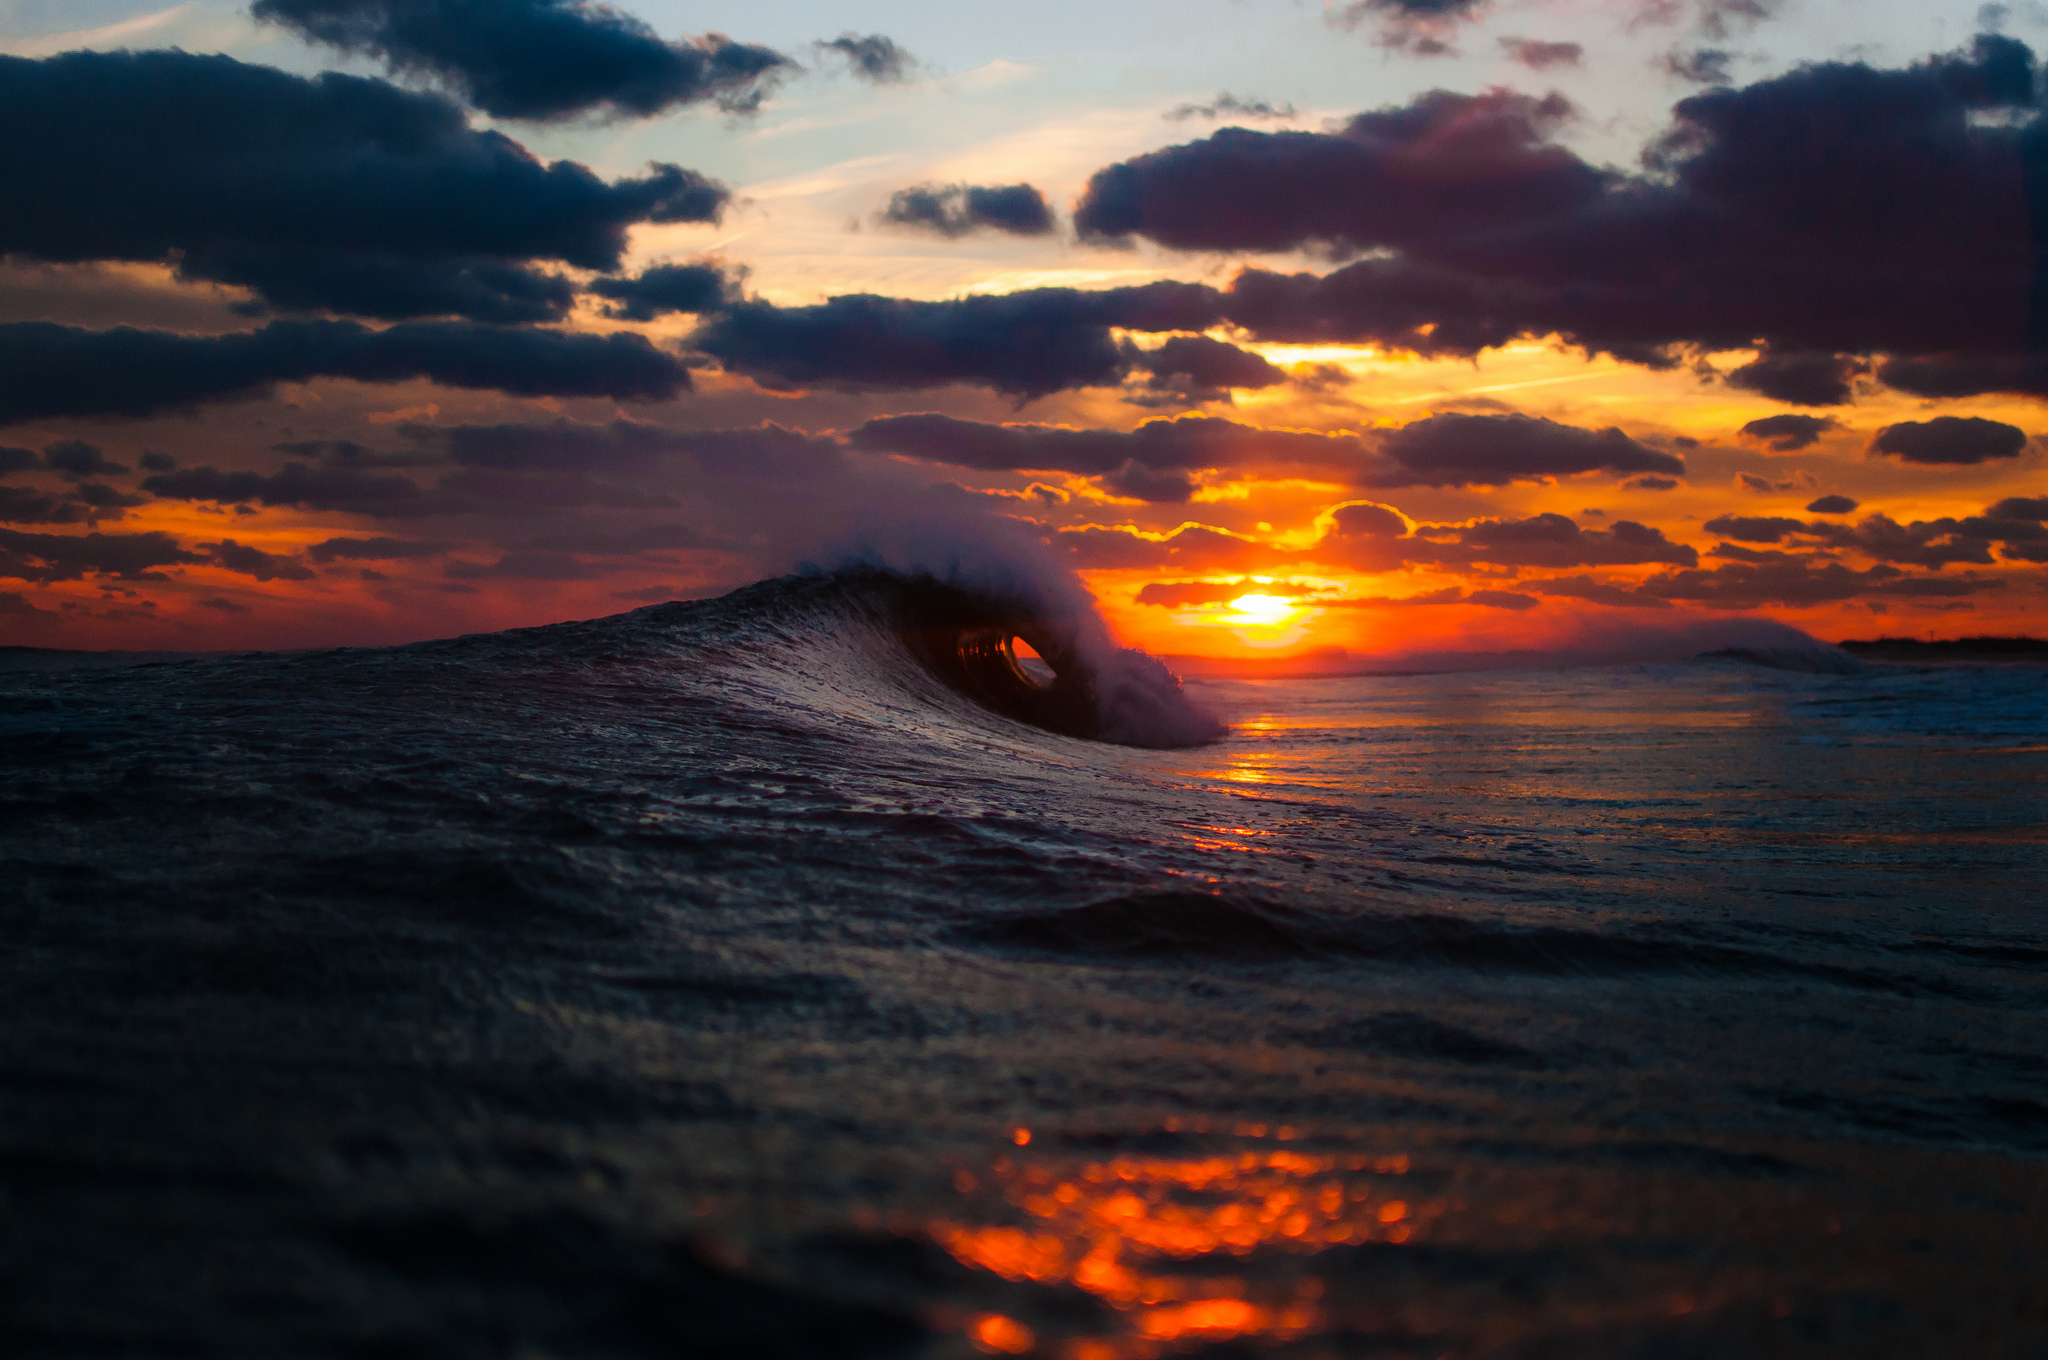 Ocean Waves Sunset Wallpapers - First HD Wallpapers